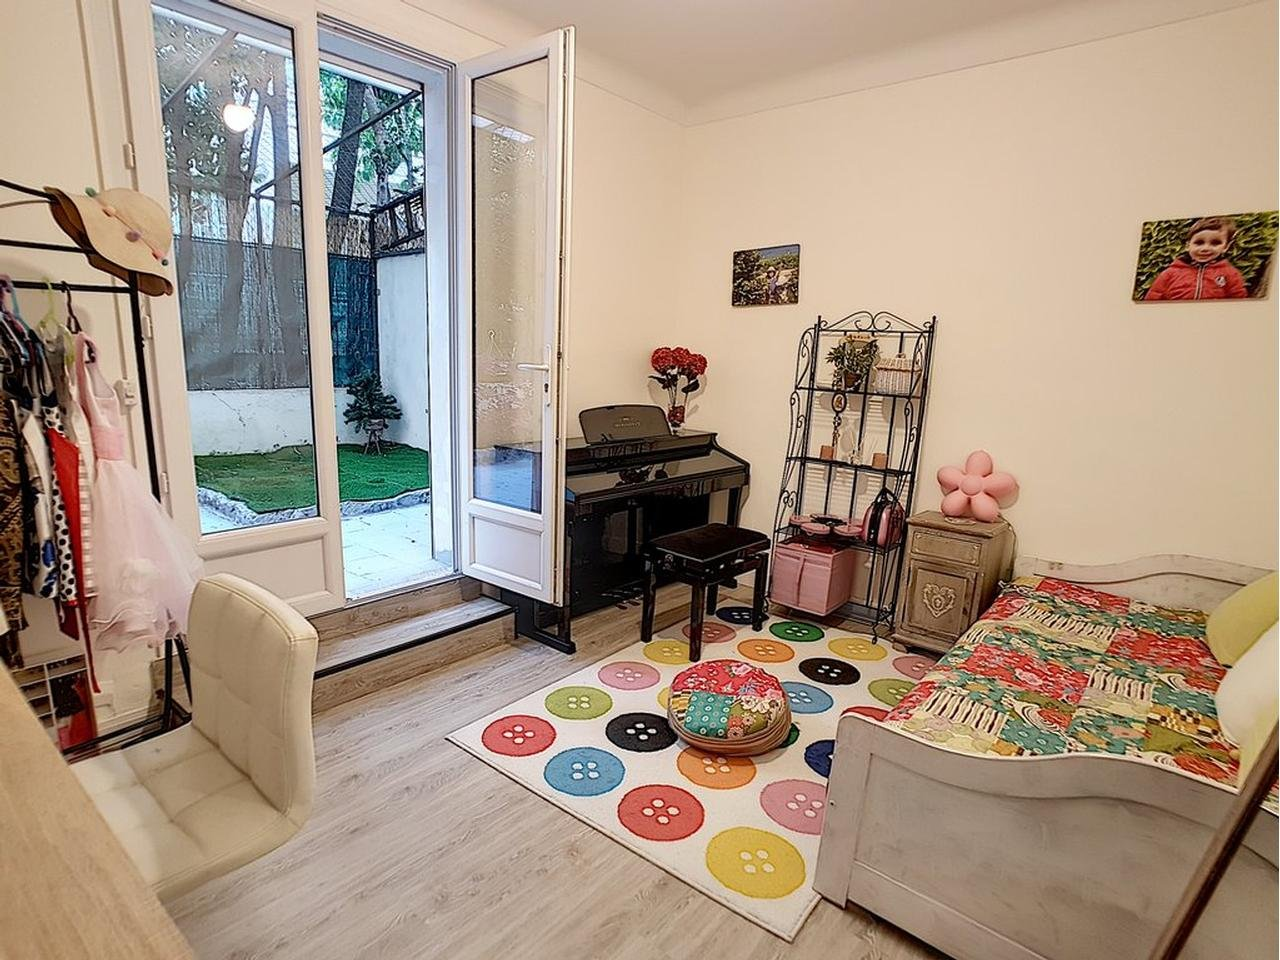 Appartement  4 Rooms 108m2  for sale   740000 €